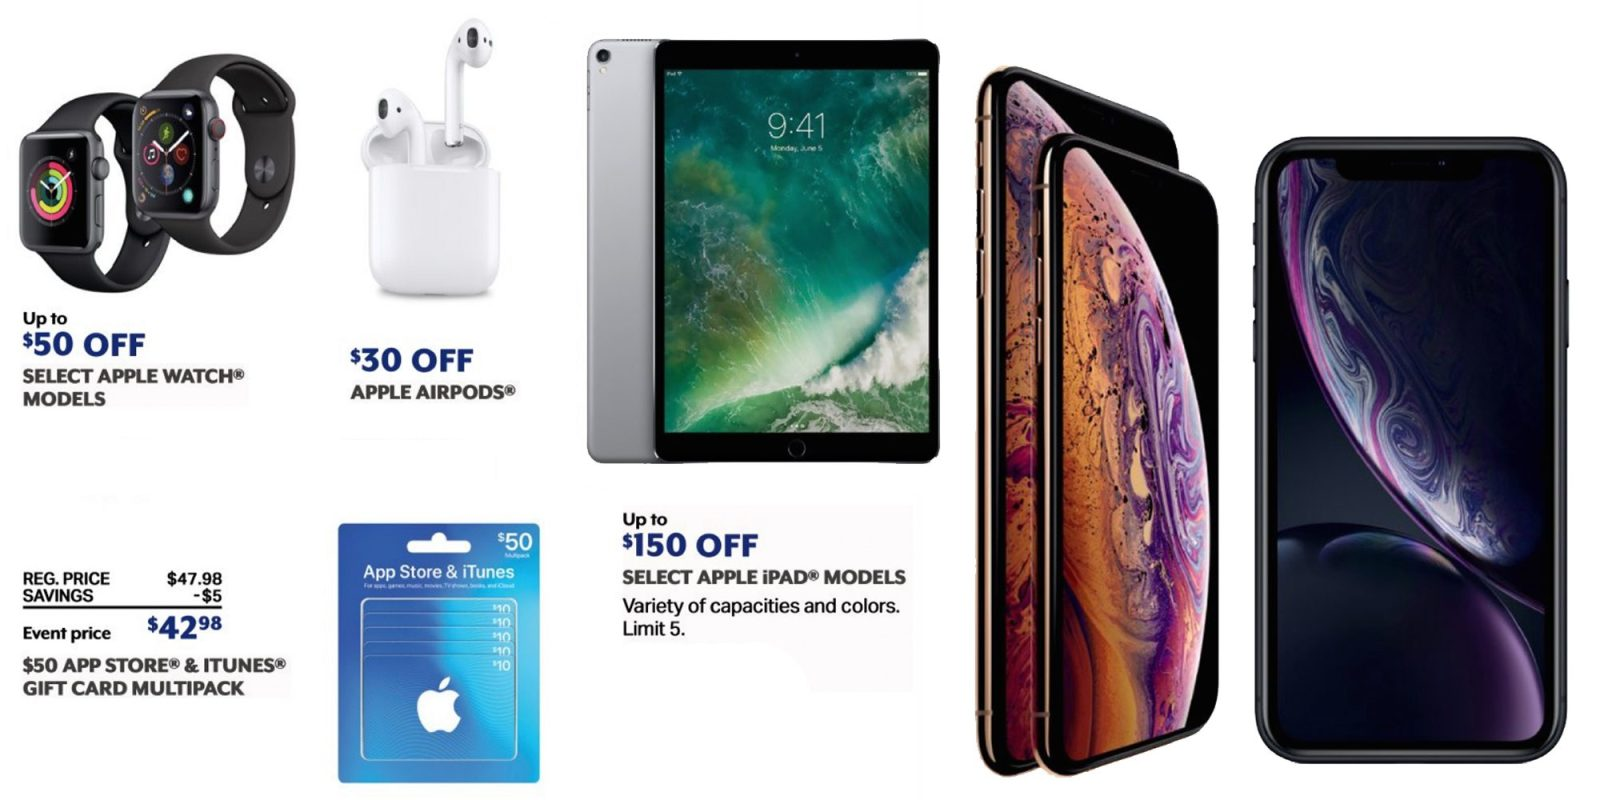 Sam?s Club annual 1-day sale delivers deals on AirPods, iPad Pro, TVs, and much more